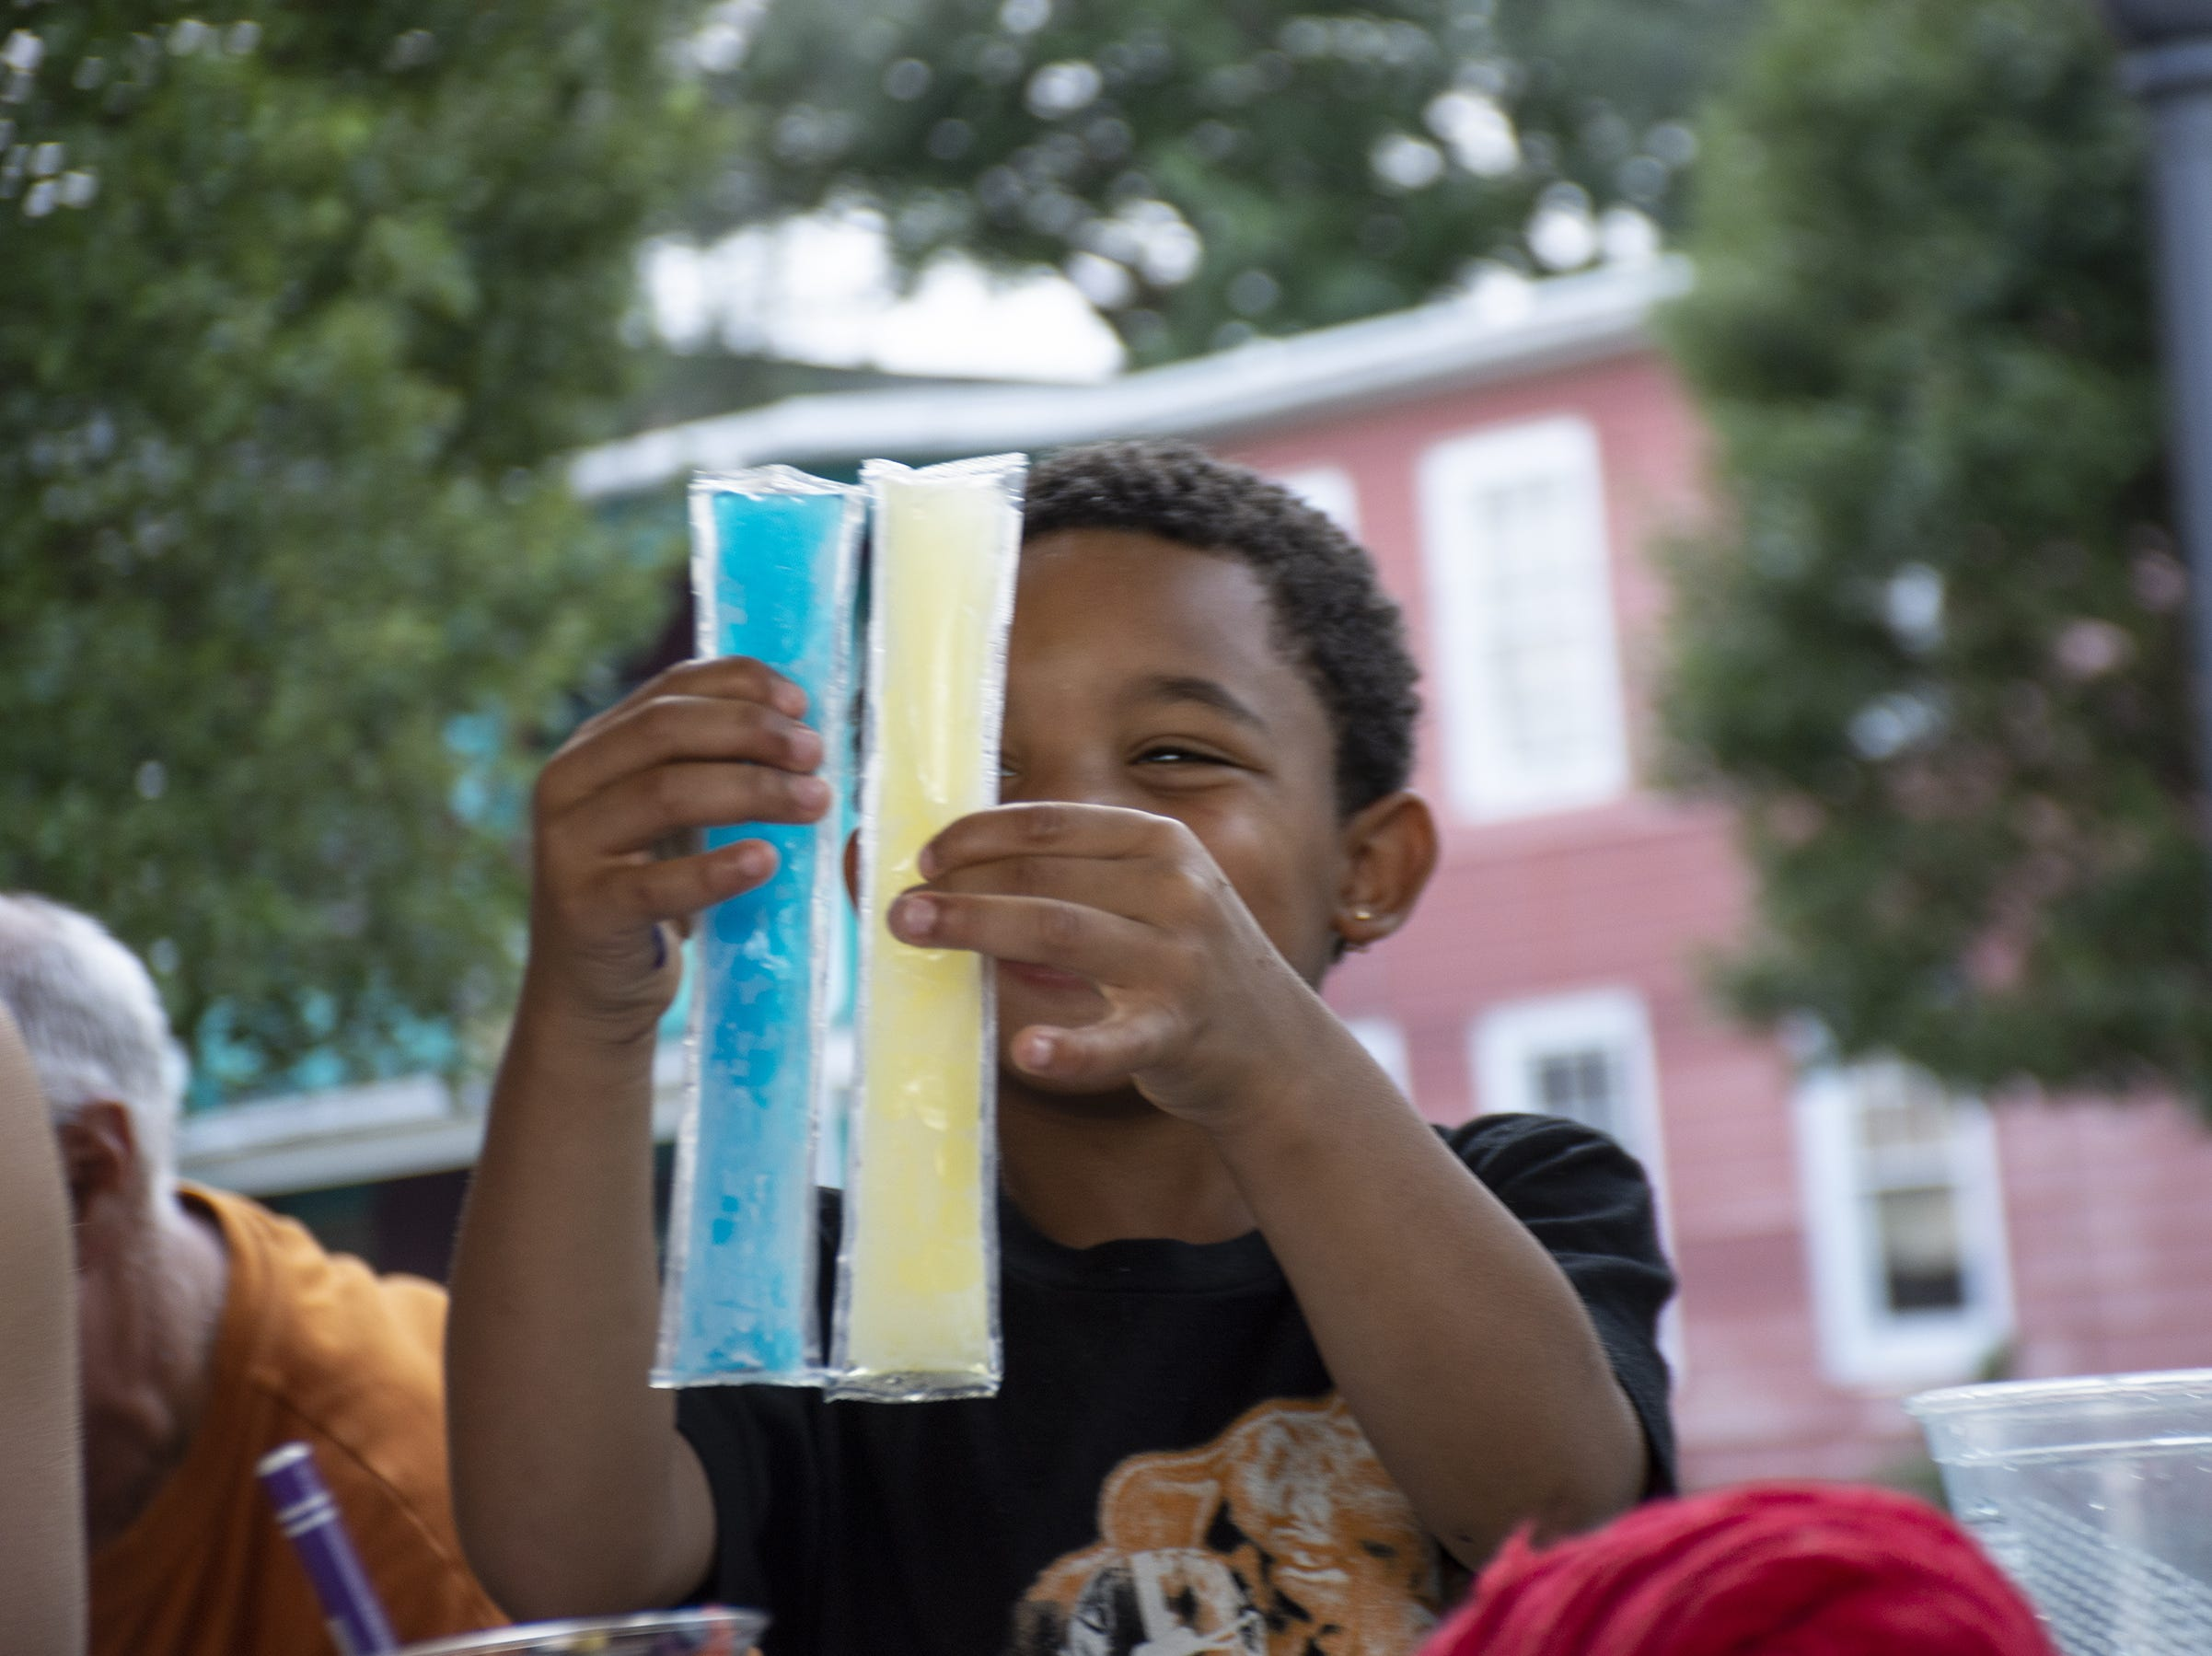 Jahlil Brown, 5, enjoys two popsicles at Art in the Parks at Renaissance Park in York.